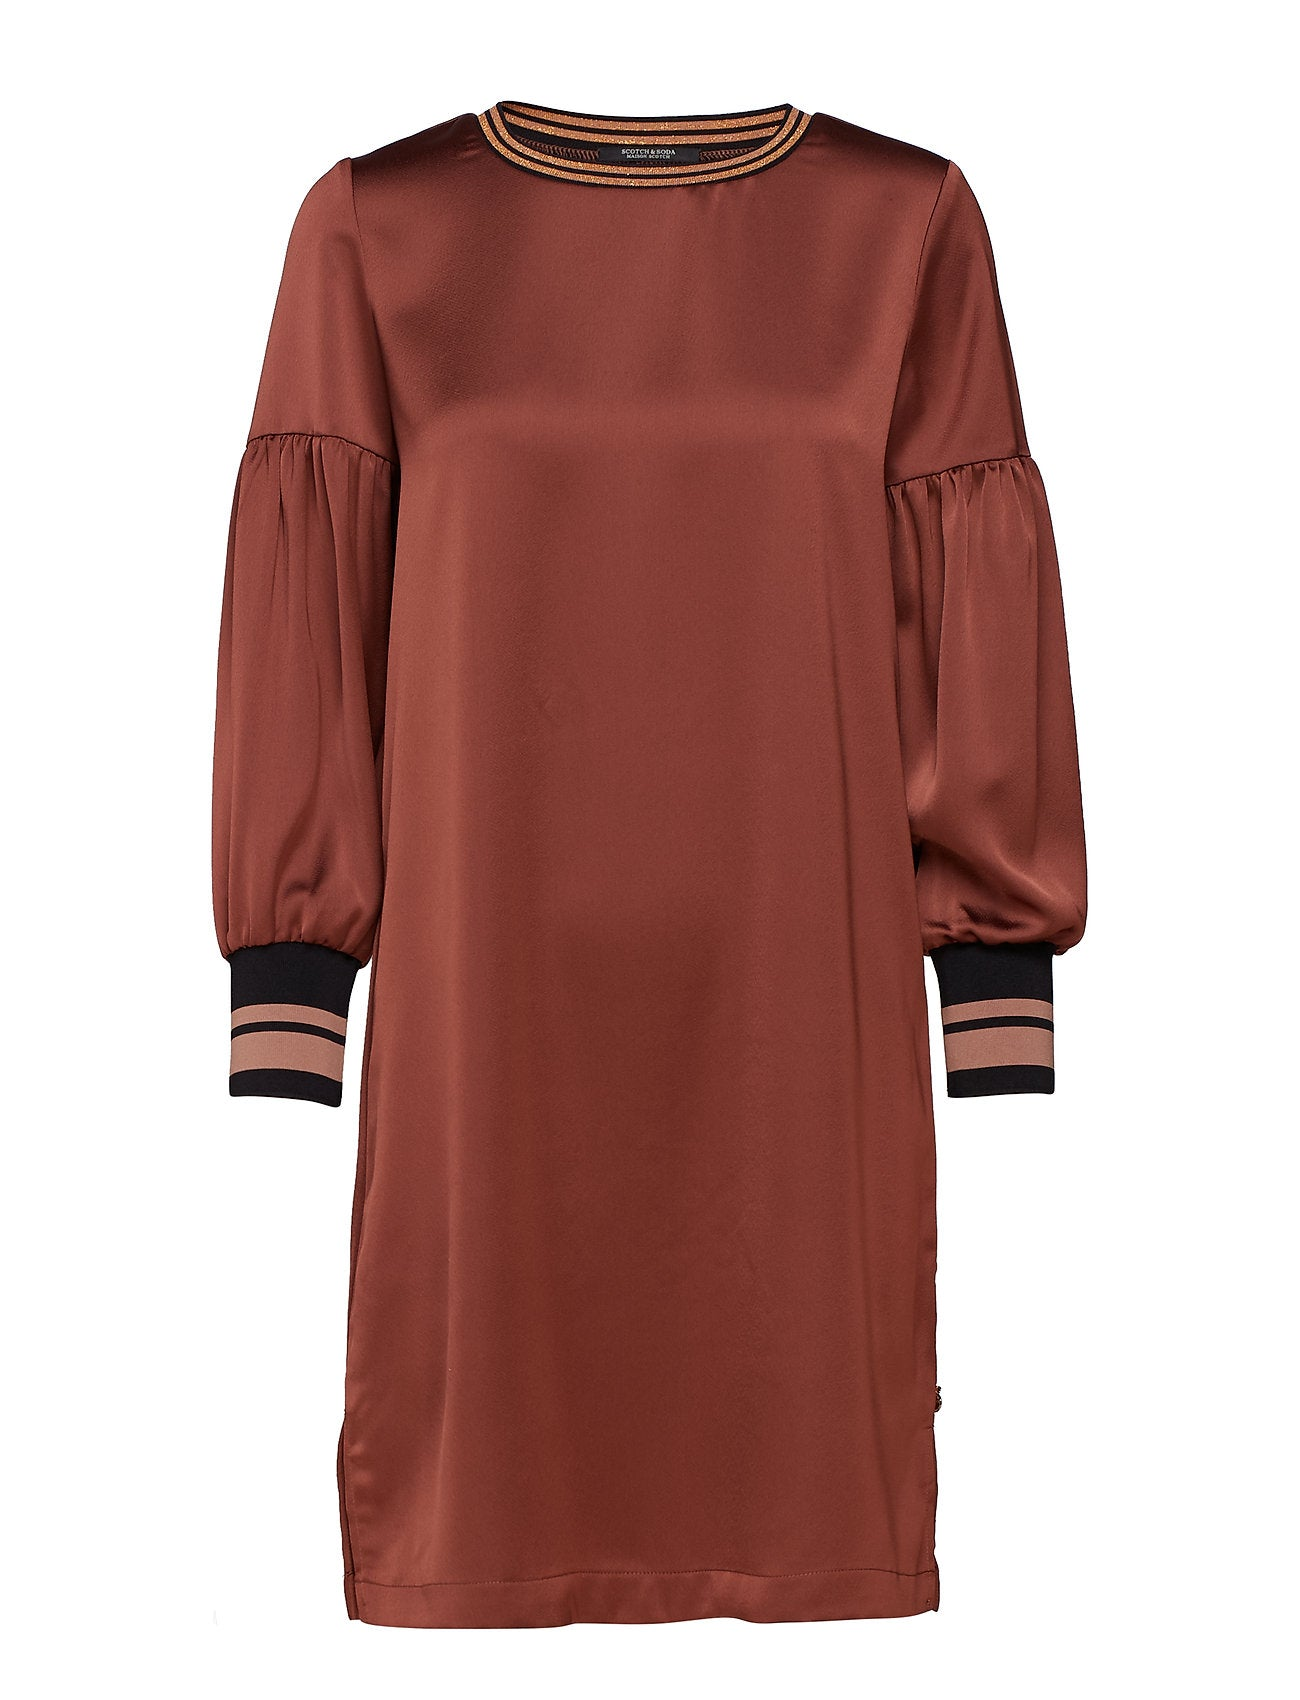 Magical Attitudes Dress in Copper